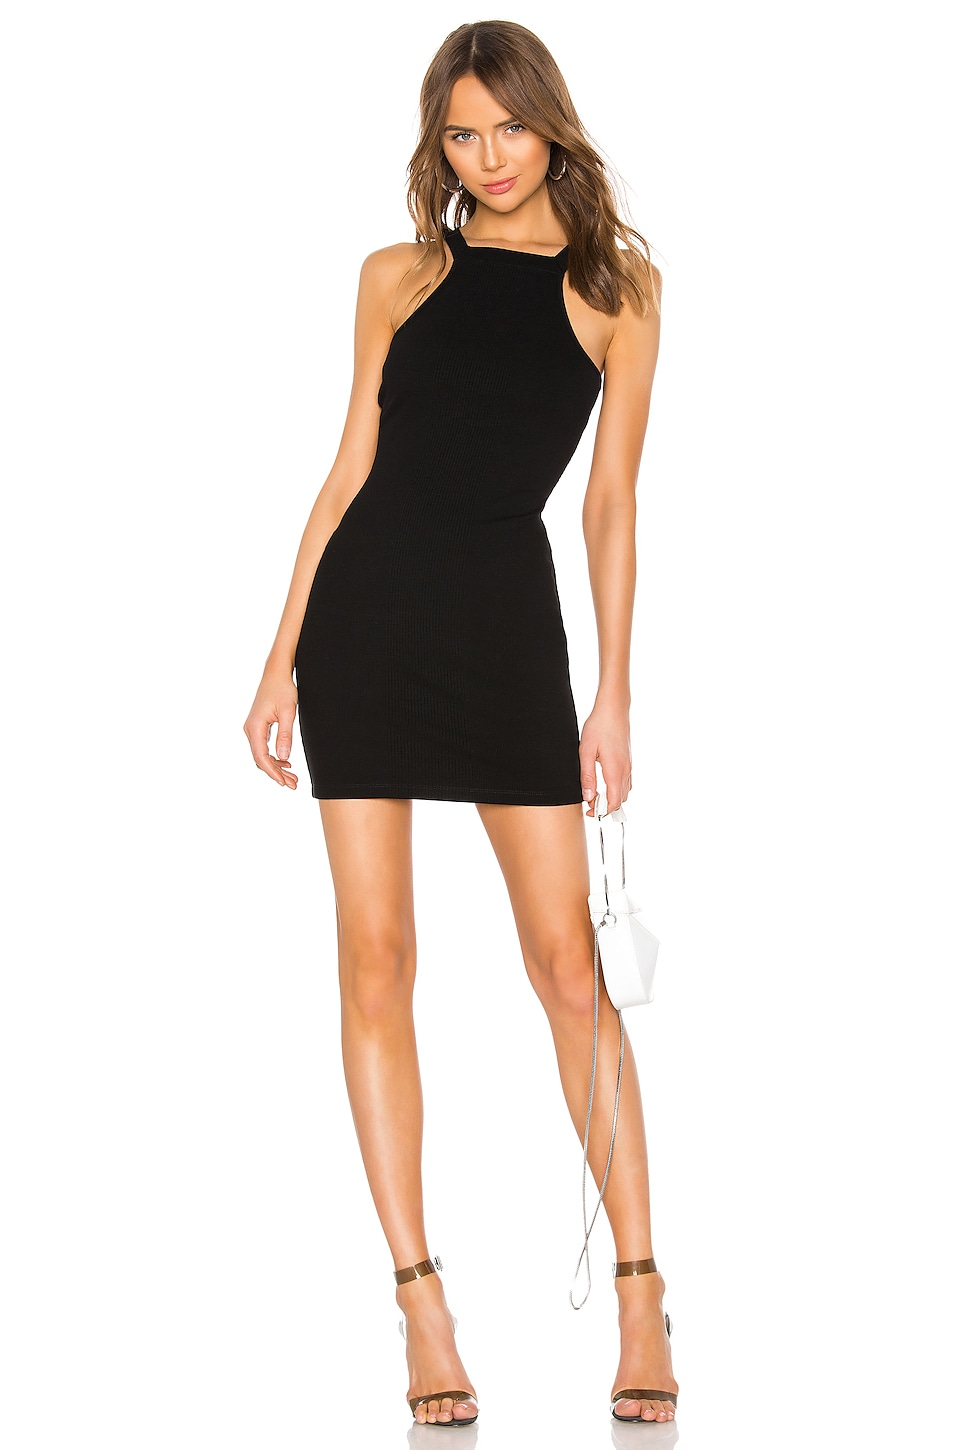 T by Alexander Wang Varigated Compact Jersey Dress in Black